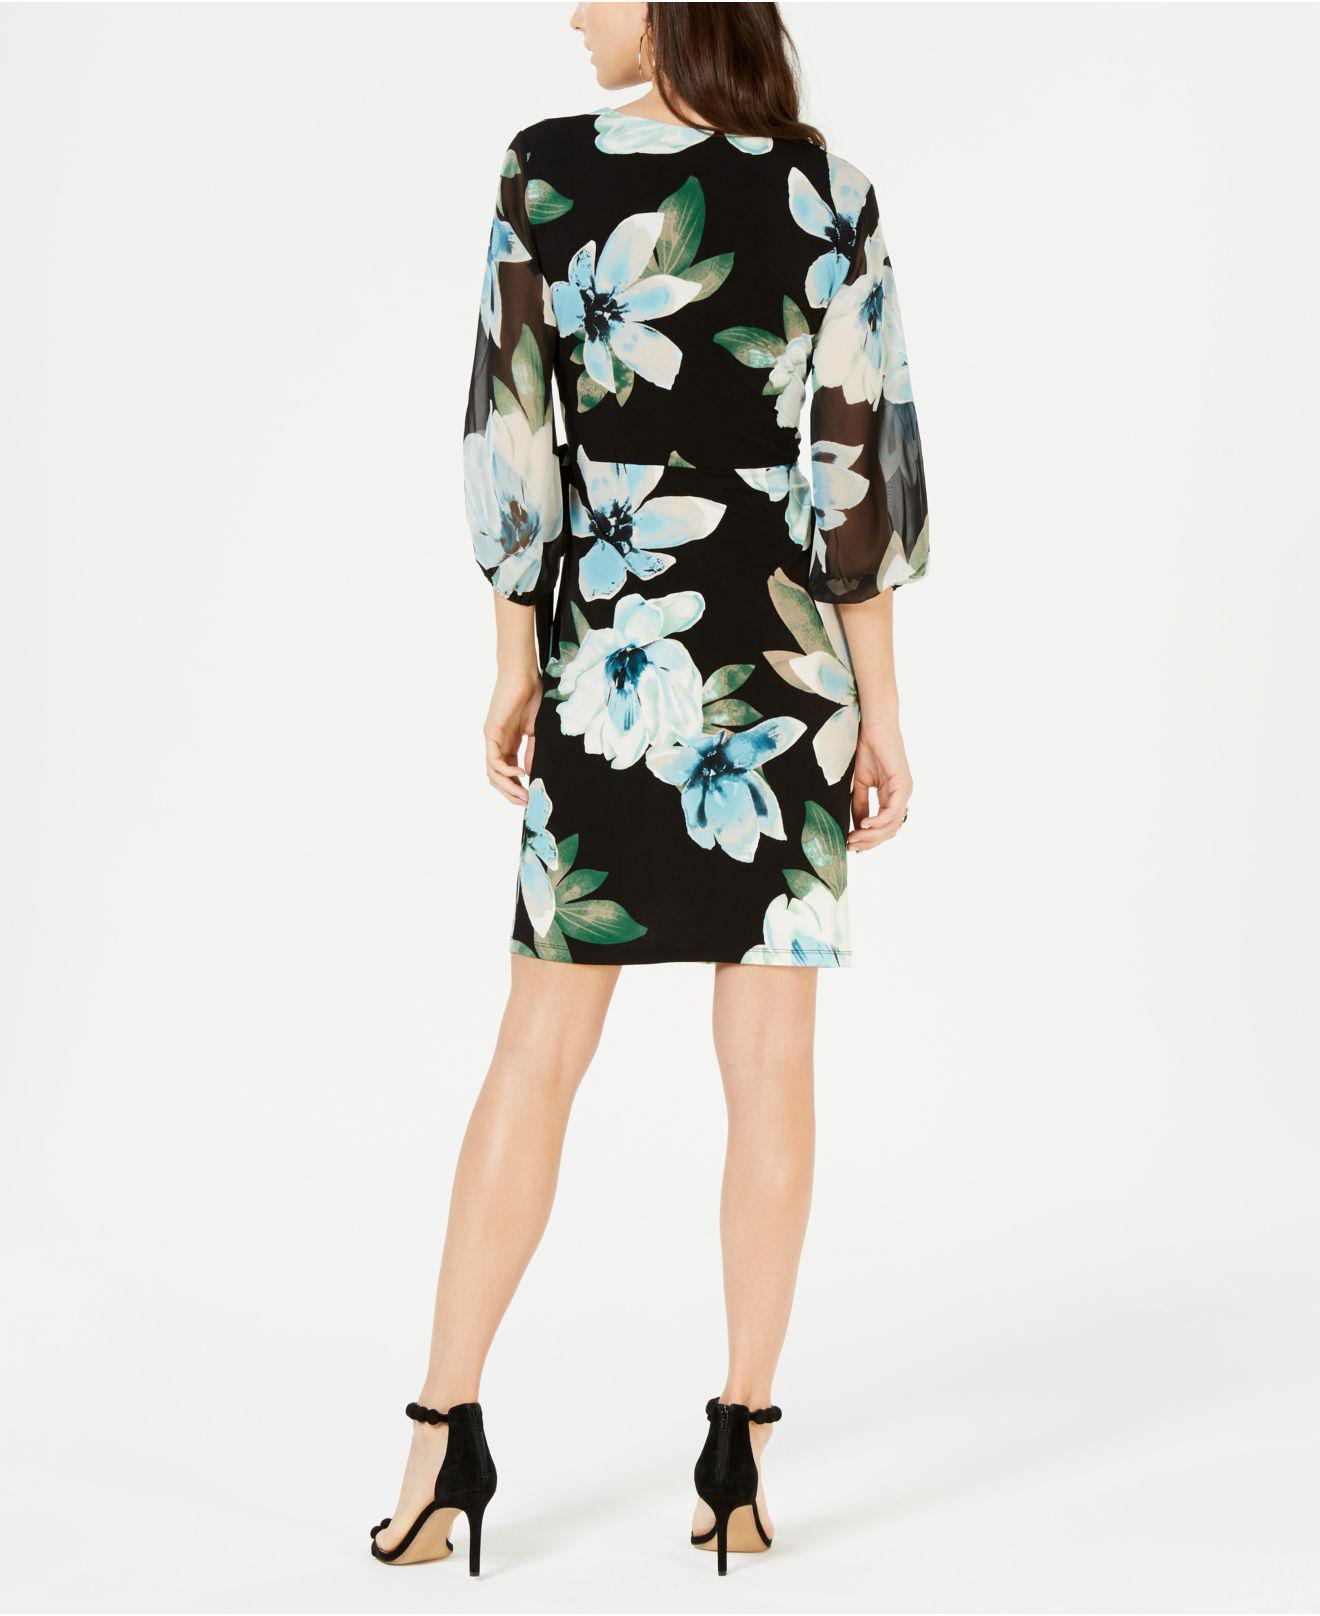 55b072932b08 Lyst - INC International Concepts I.n.c. Floral Woven Faux-wrap ...